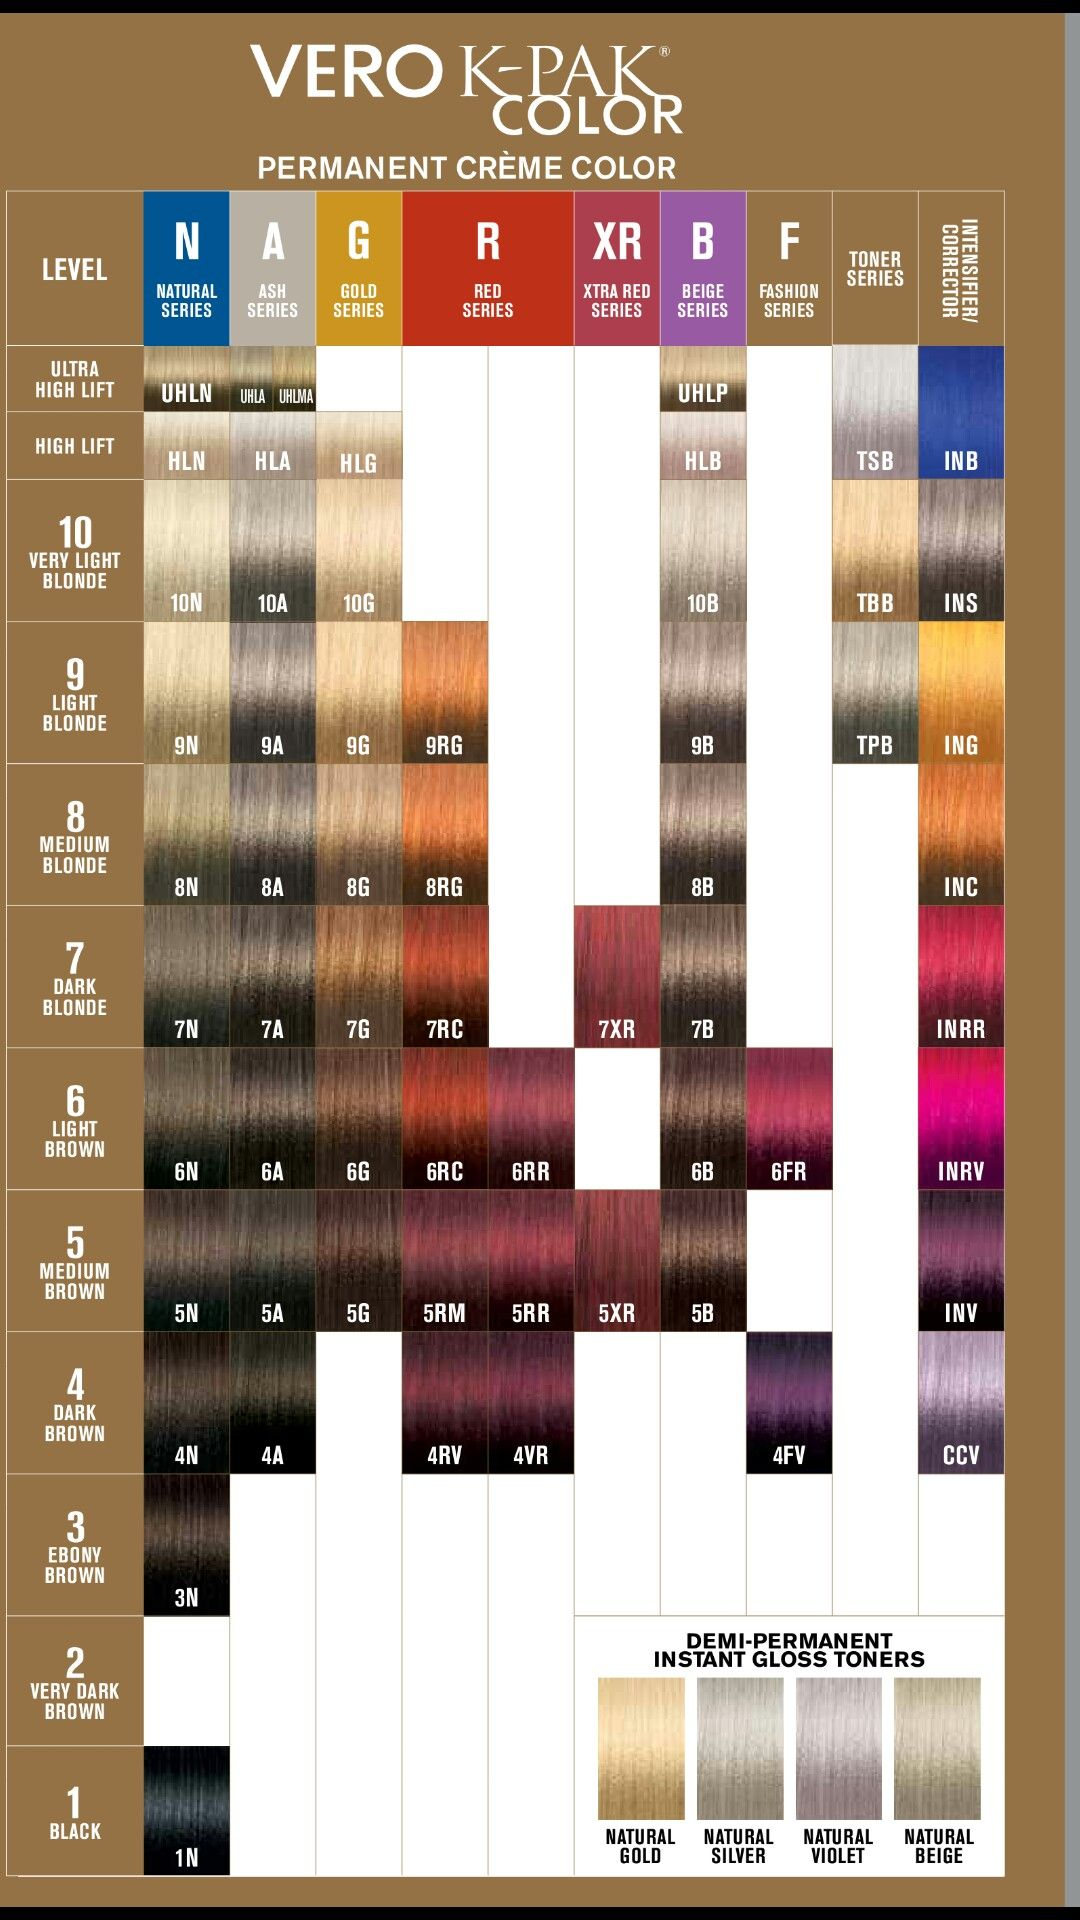 Pin By Embellishment Archives On Hair Hair Color Joico Hair Color Hair Color Swatches Mixing Hair Color